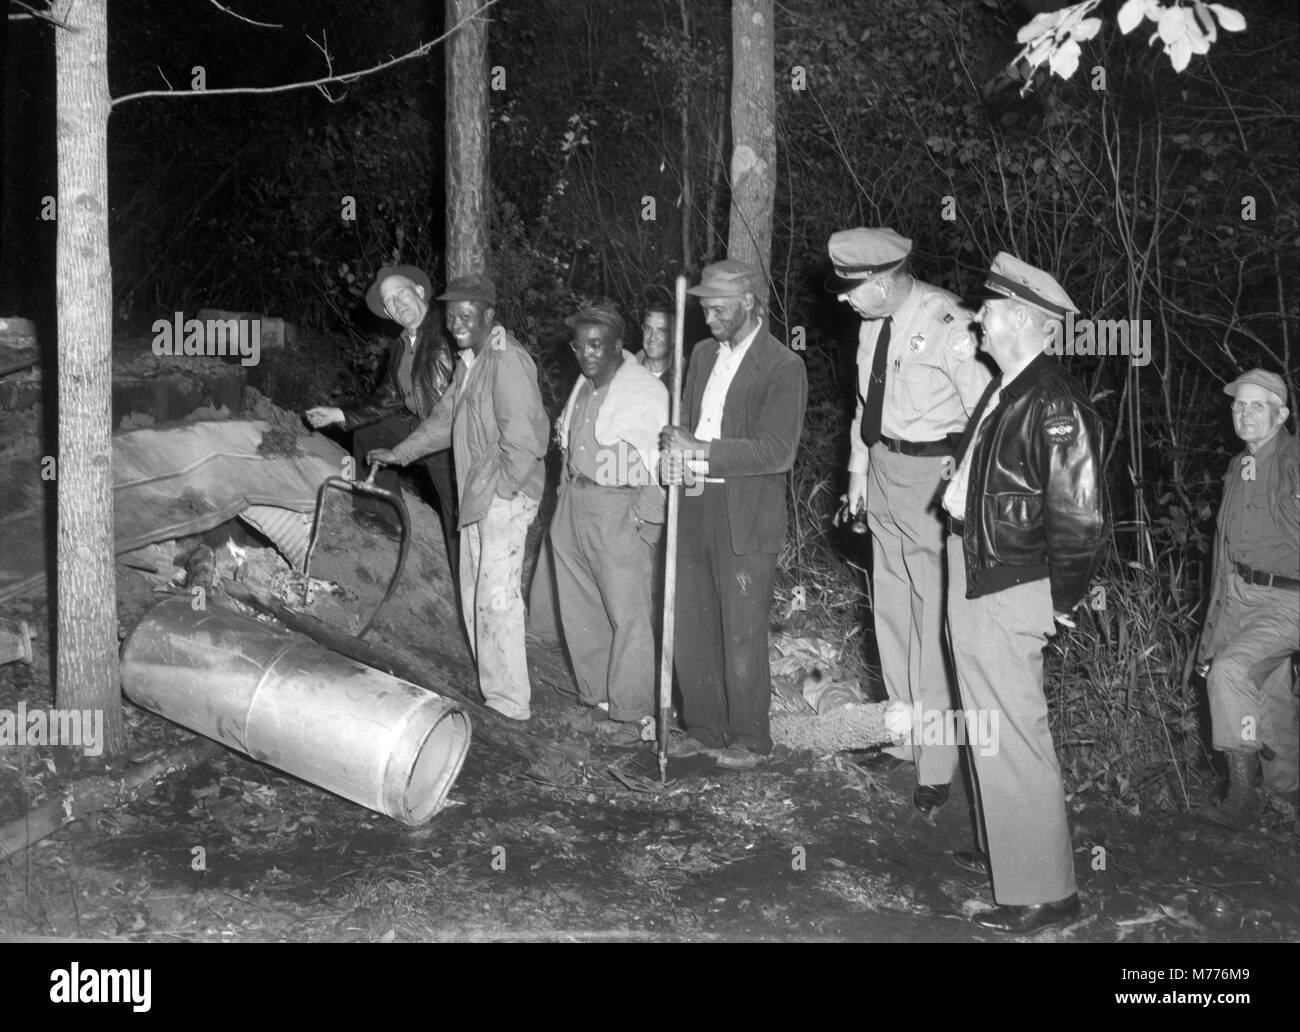 Law enforcement officials investigate the scene of an illegal backwoods moonshine still in rural Georgia, ca. 1955. - Stock Image